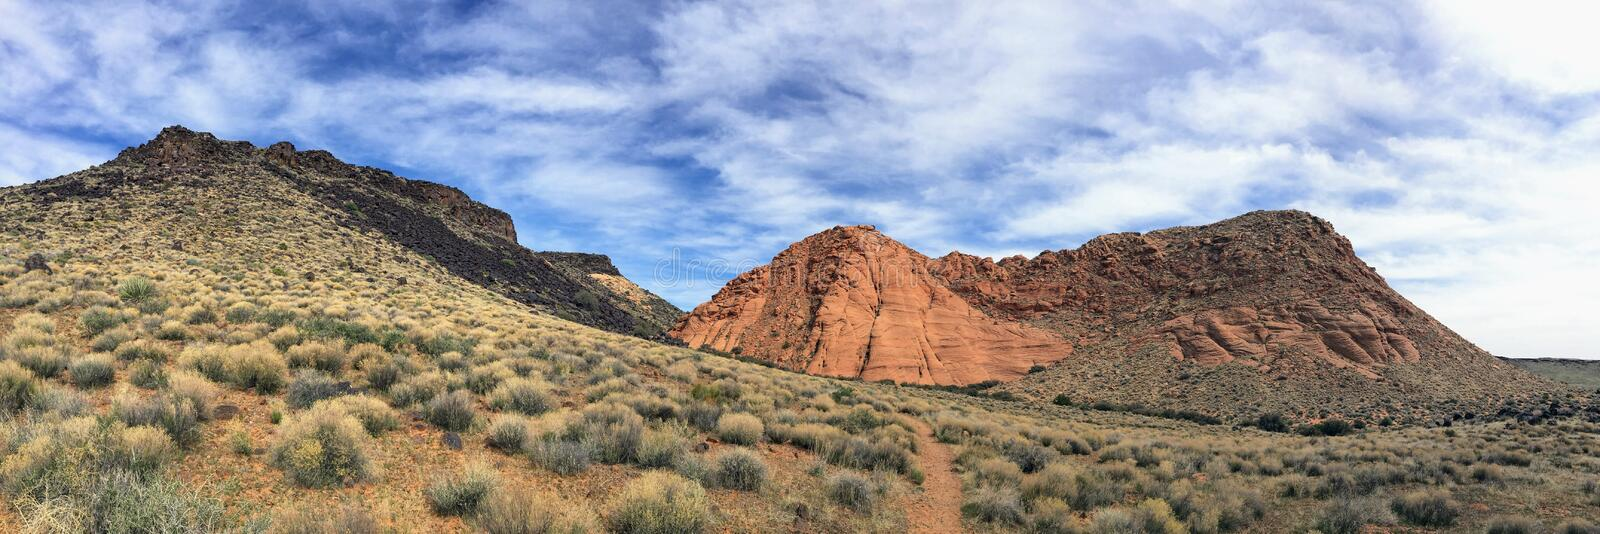 Views of sandstone and lava rock mountains and desert plants around the Red Cliffs National Conservation Area on the Yellow Knolls royalty free stock photo